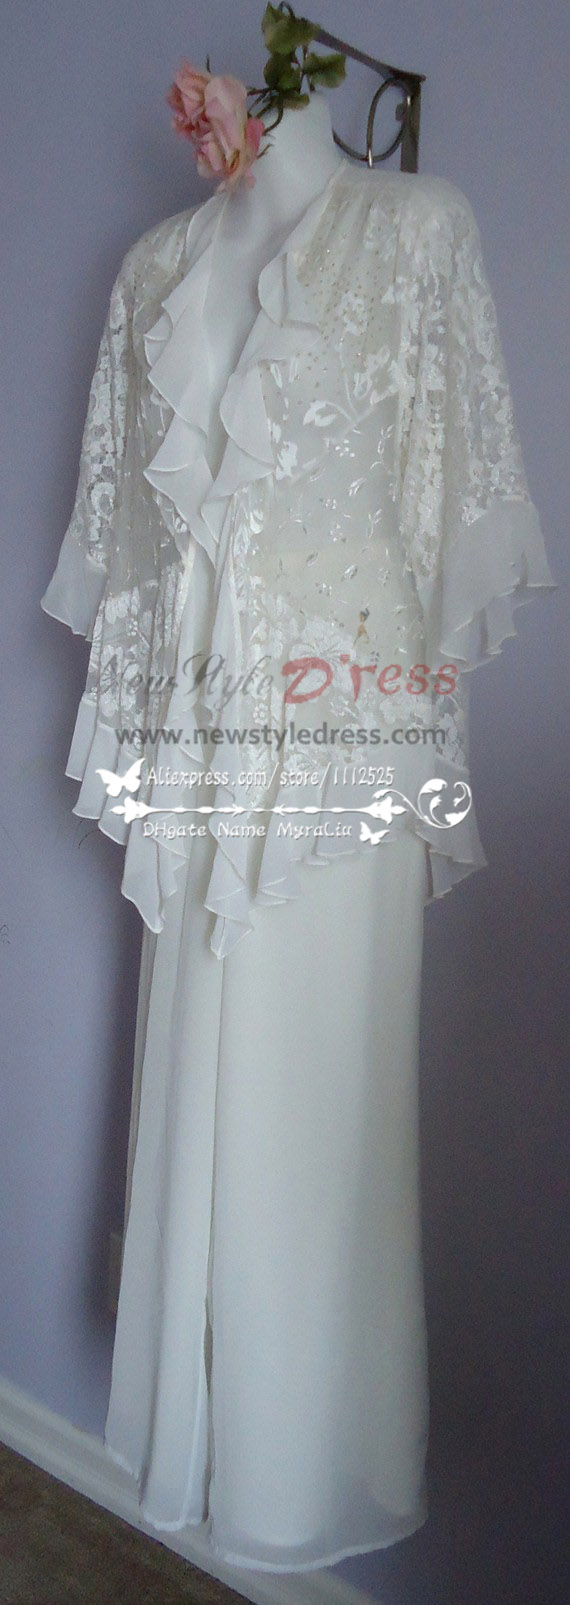 Ivory lace pant suits for the mother of the bride outfits